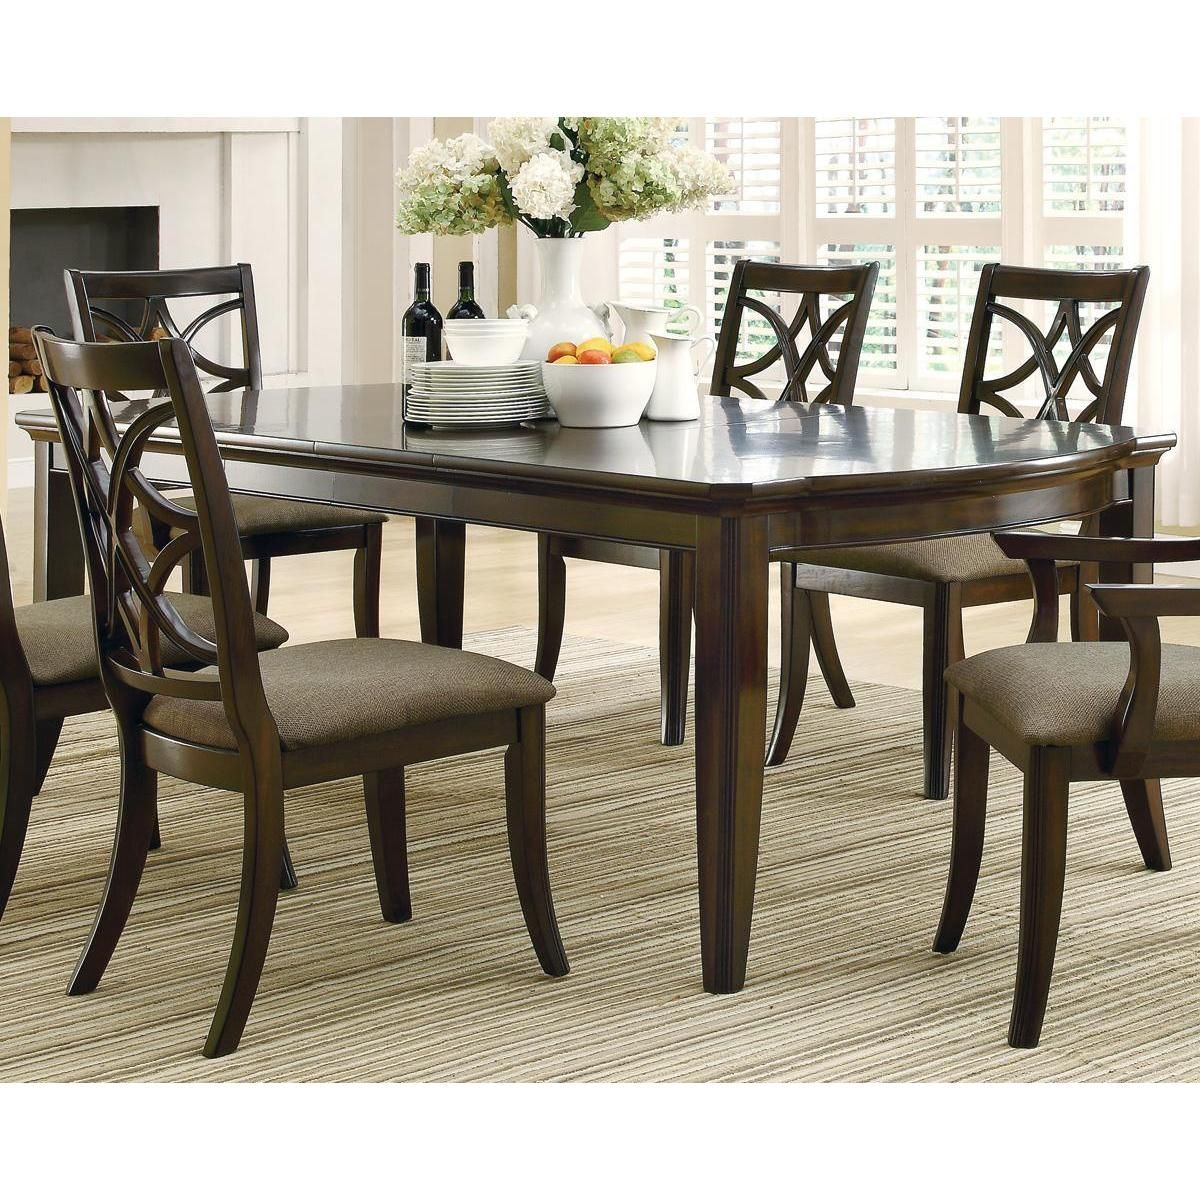 Allen Espresso Finish 7-piece Dining Set With Extension